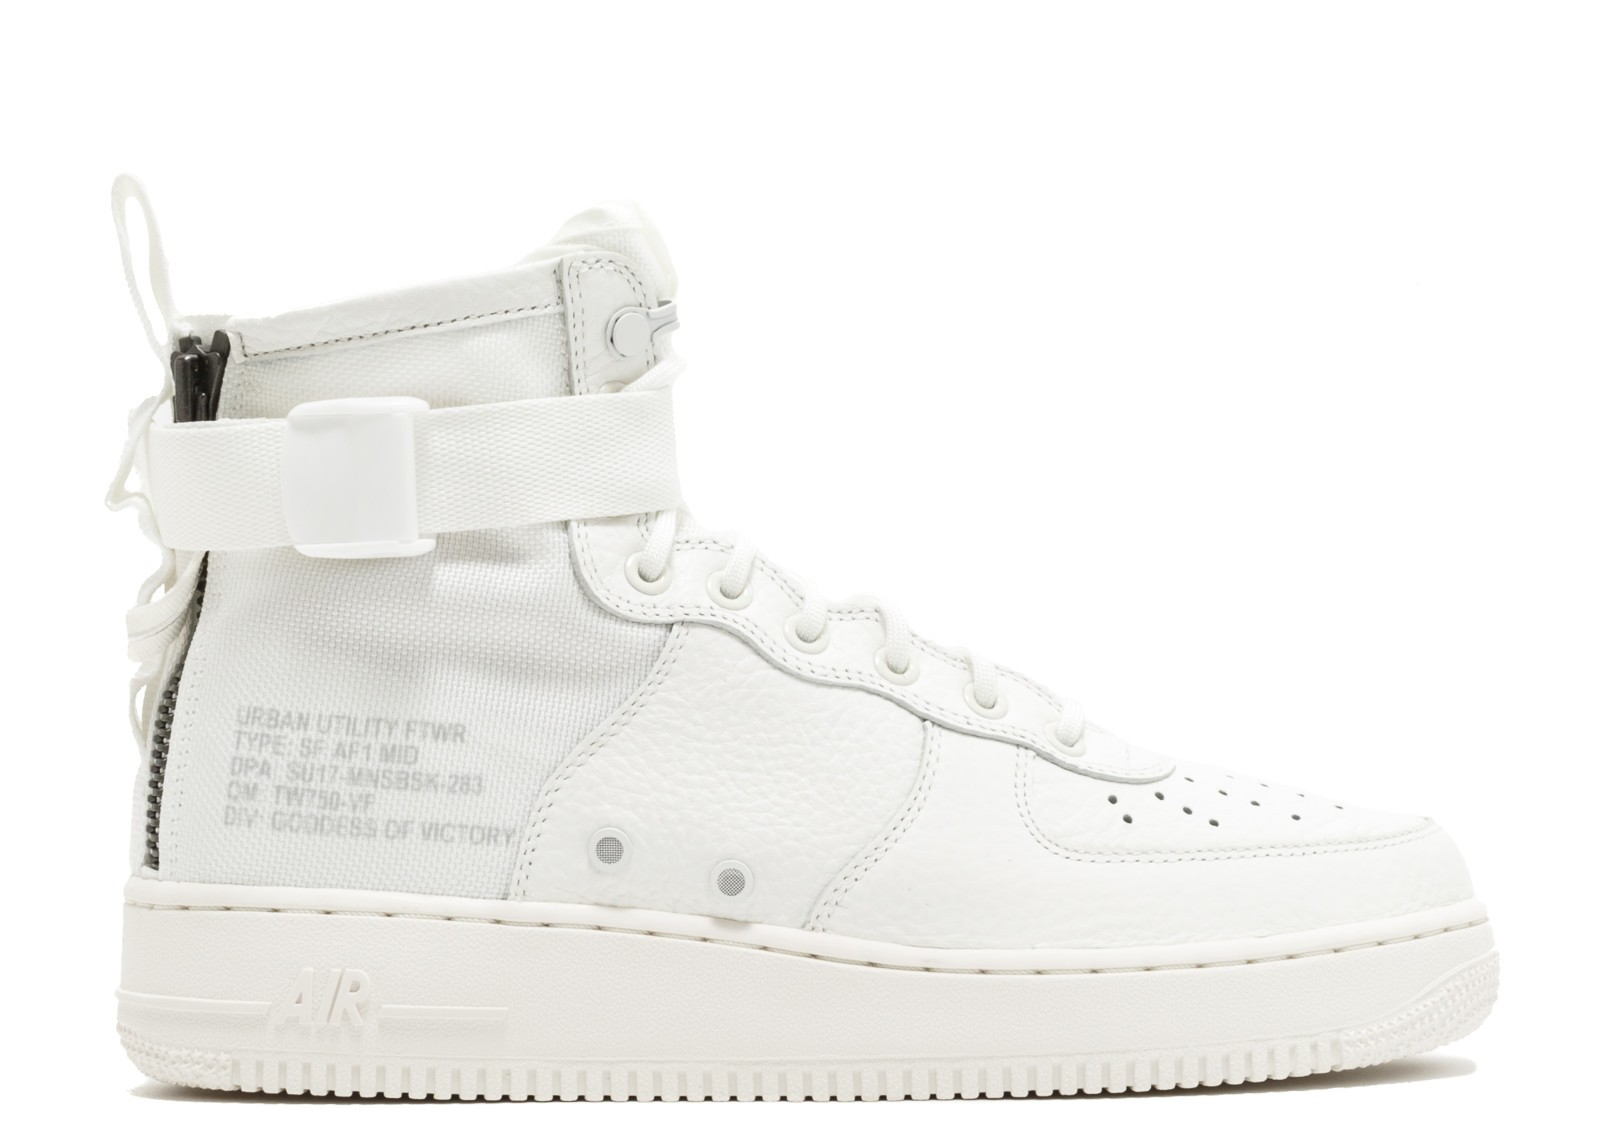 innovative design 31f31 852d1 Nike Air Force 1 Sf Af1 Mid Triple Ivory White AA6655-100